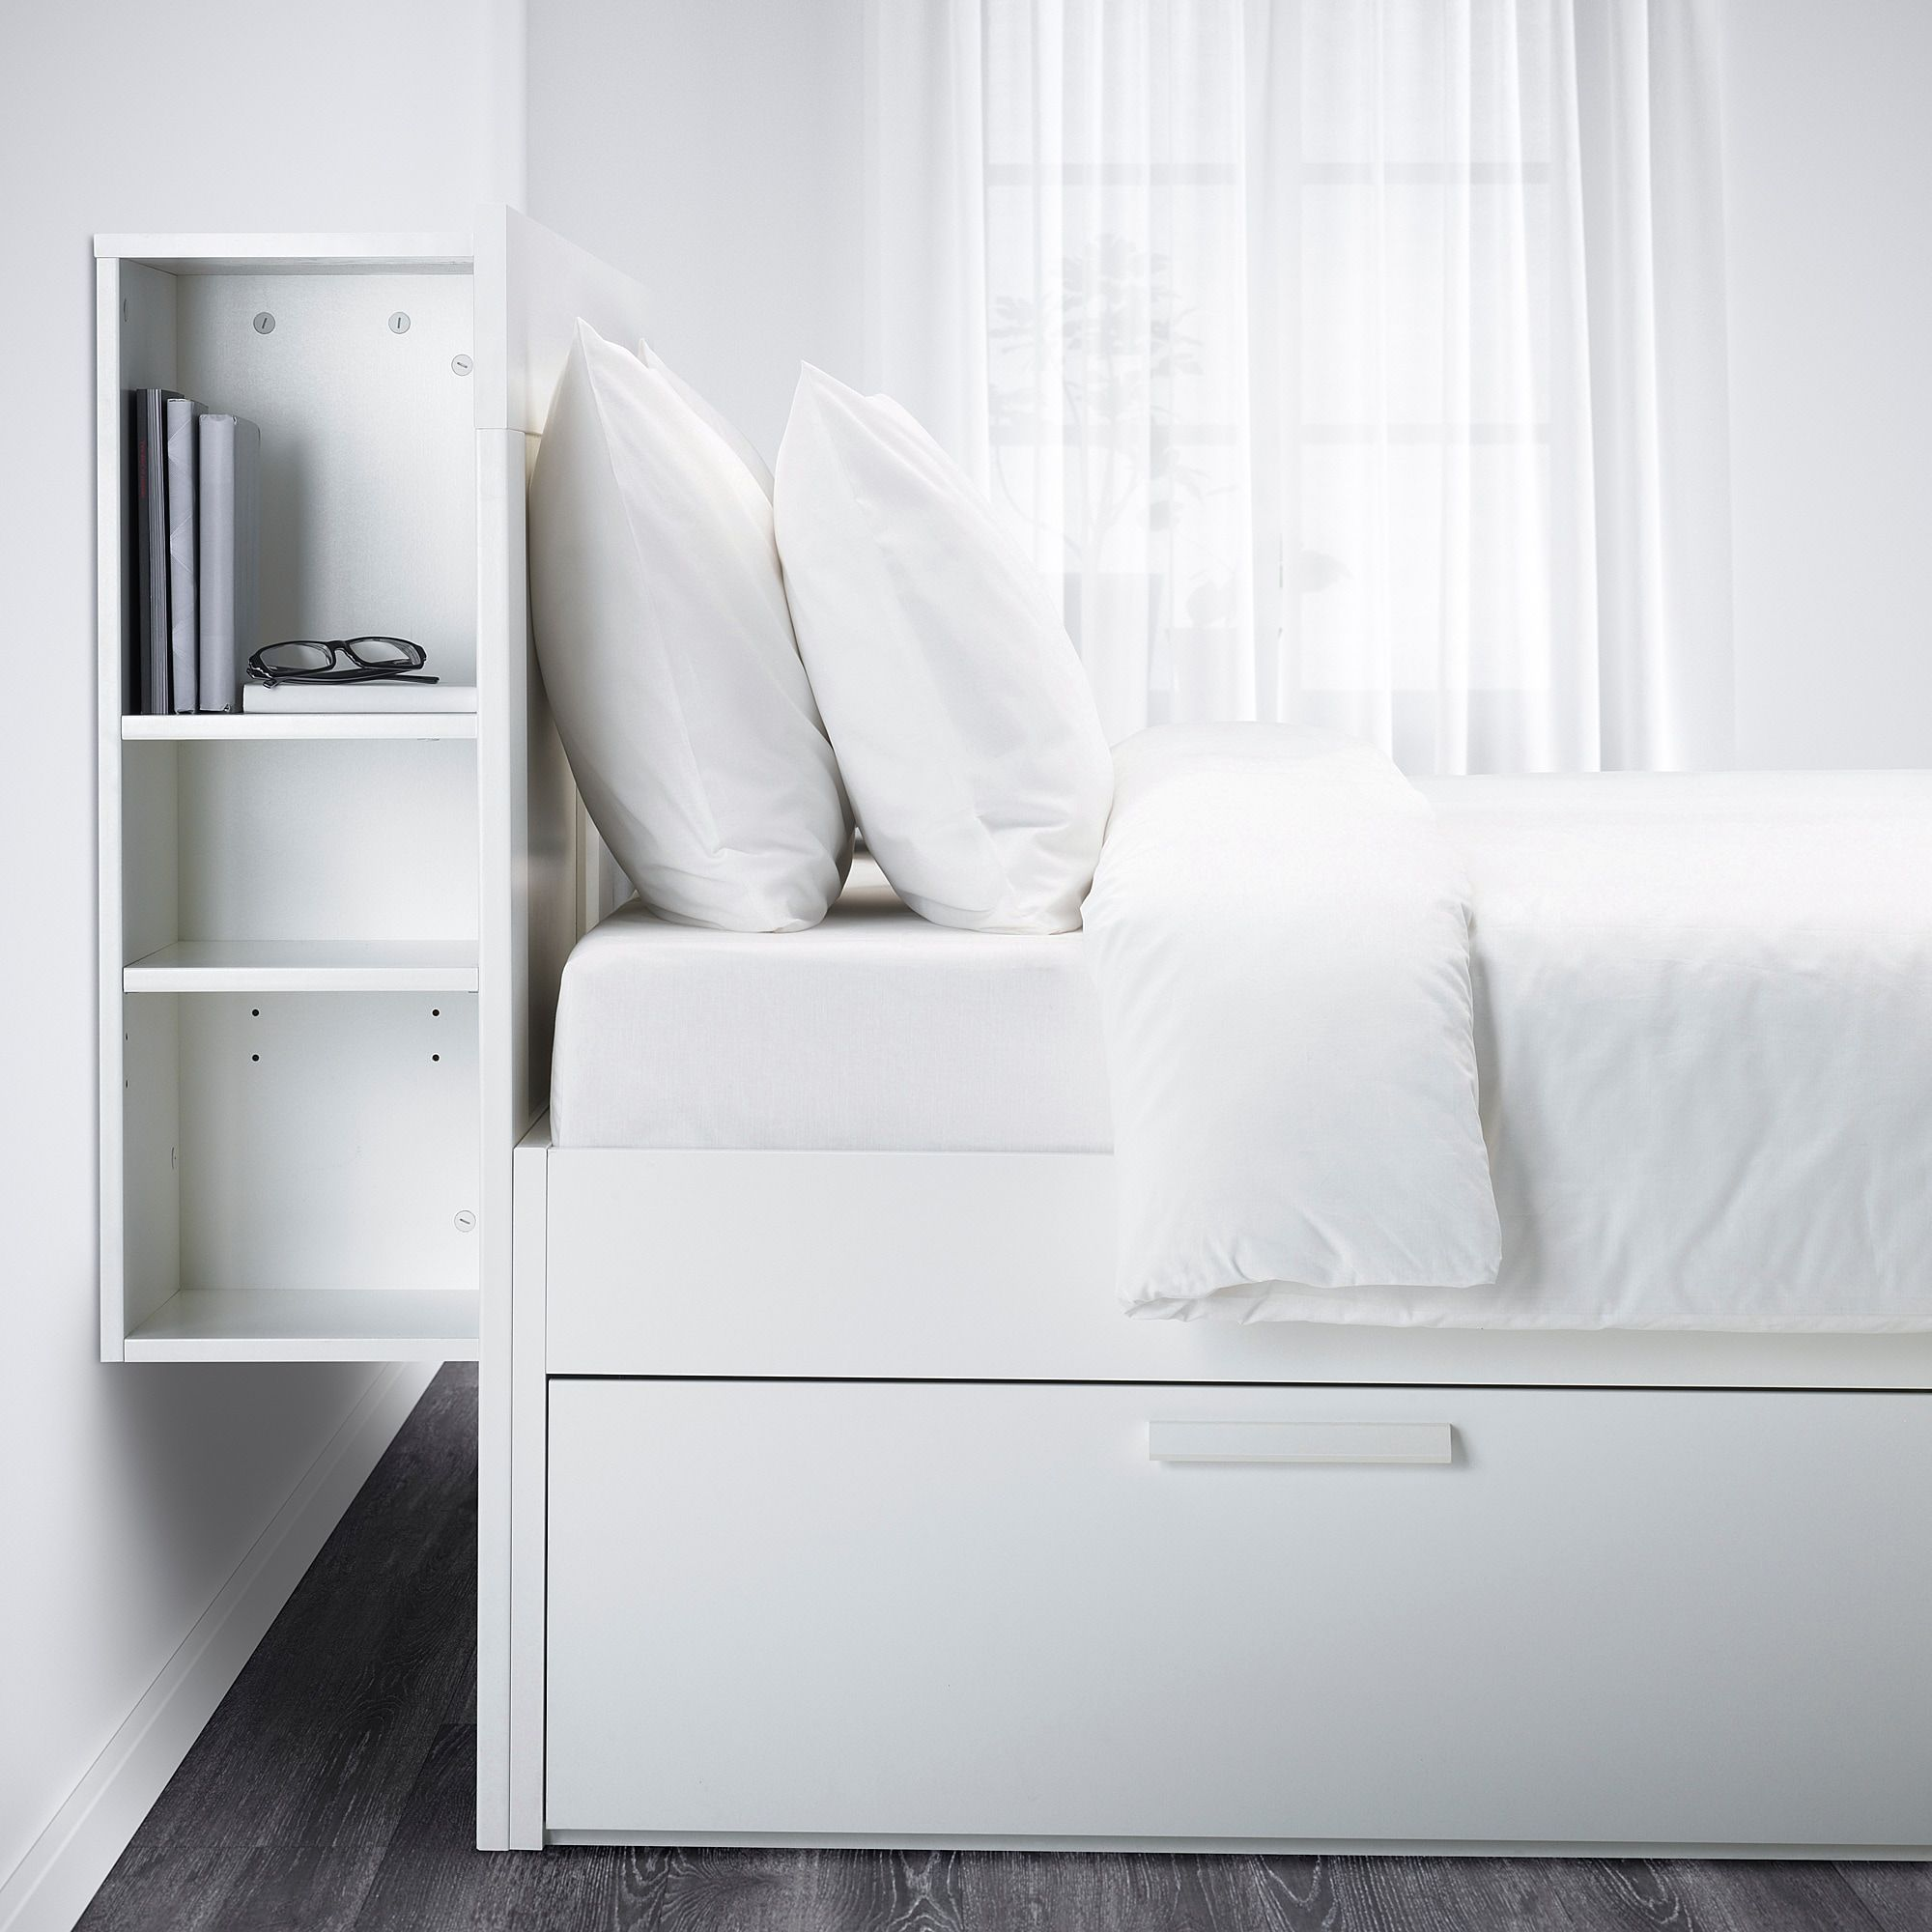 Brimnes Bed Frame With Storage Headboard White Full Ikea In 2020 Bed Frame With Storage Headboard Storage Queen Size Bed Frames,Small Kids Bedroom Storage Ideas